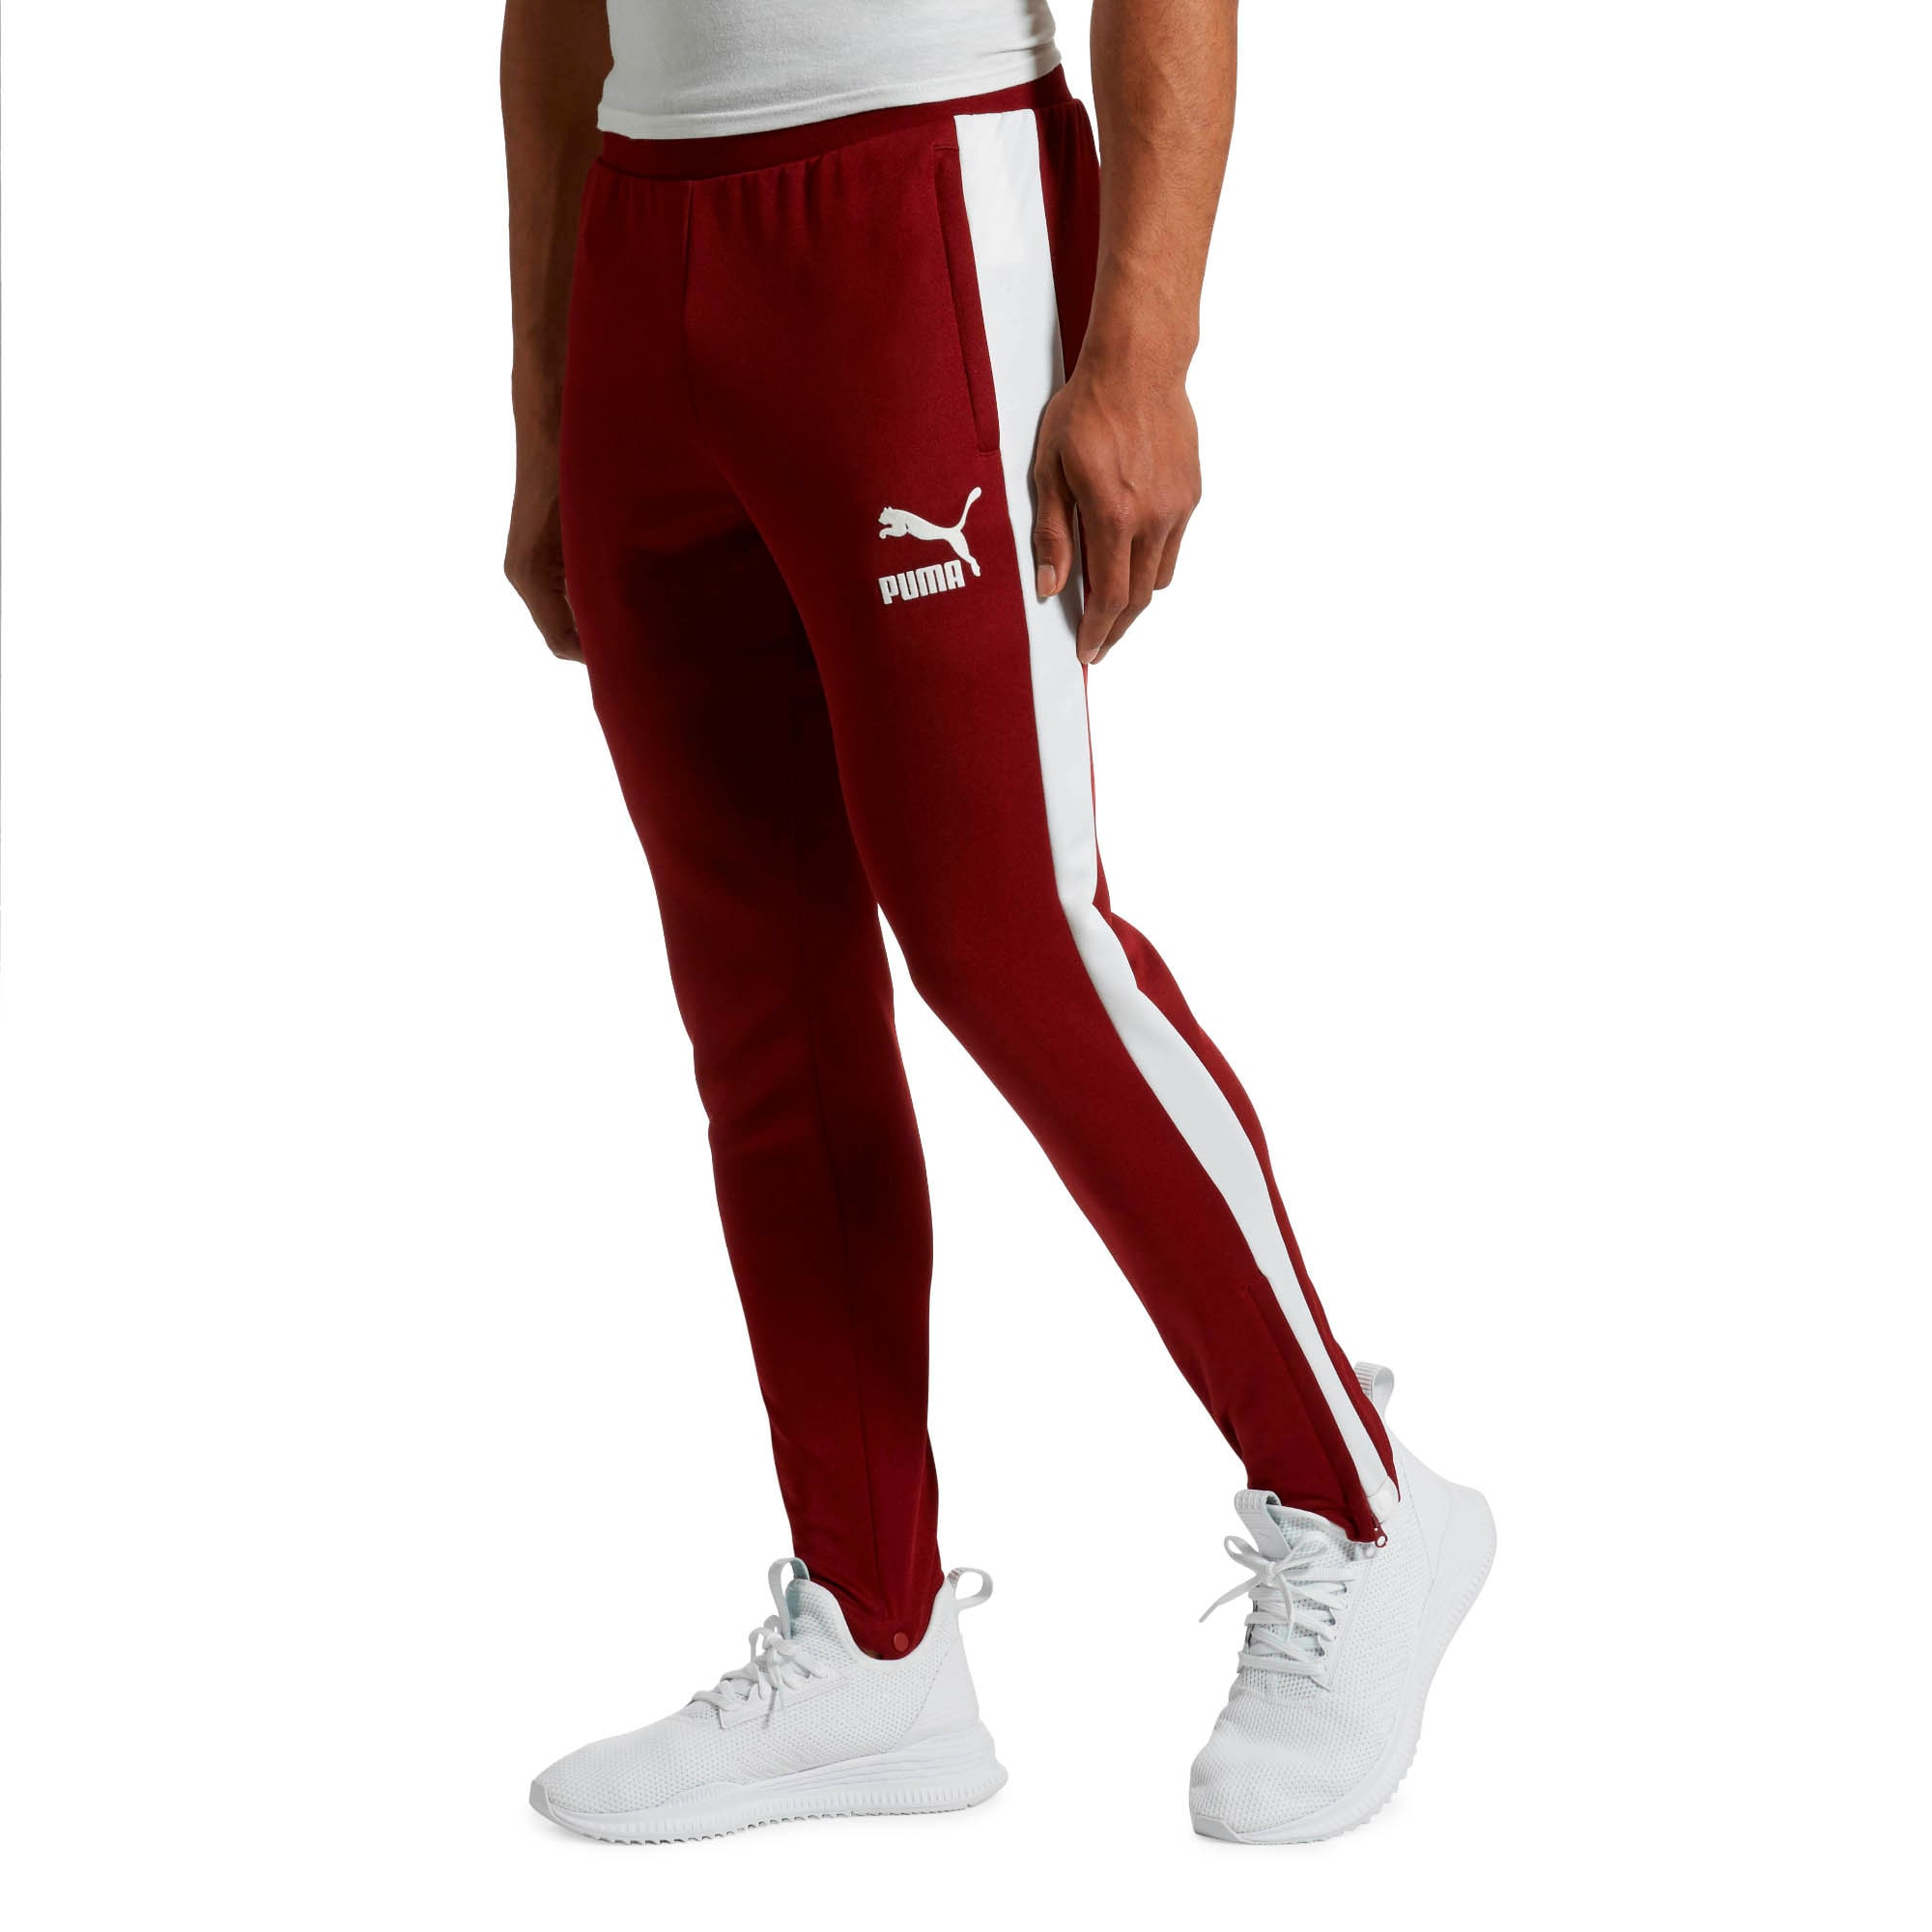 Thumbnail 2 of T7 Vintage Men's Track Pants, Pomegranate-Puma White, medium